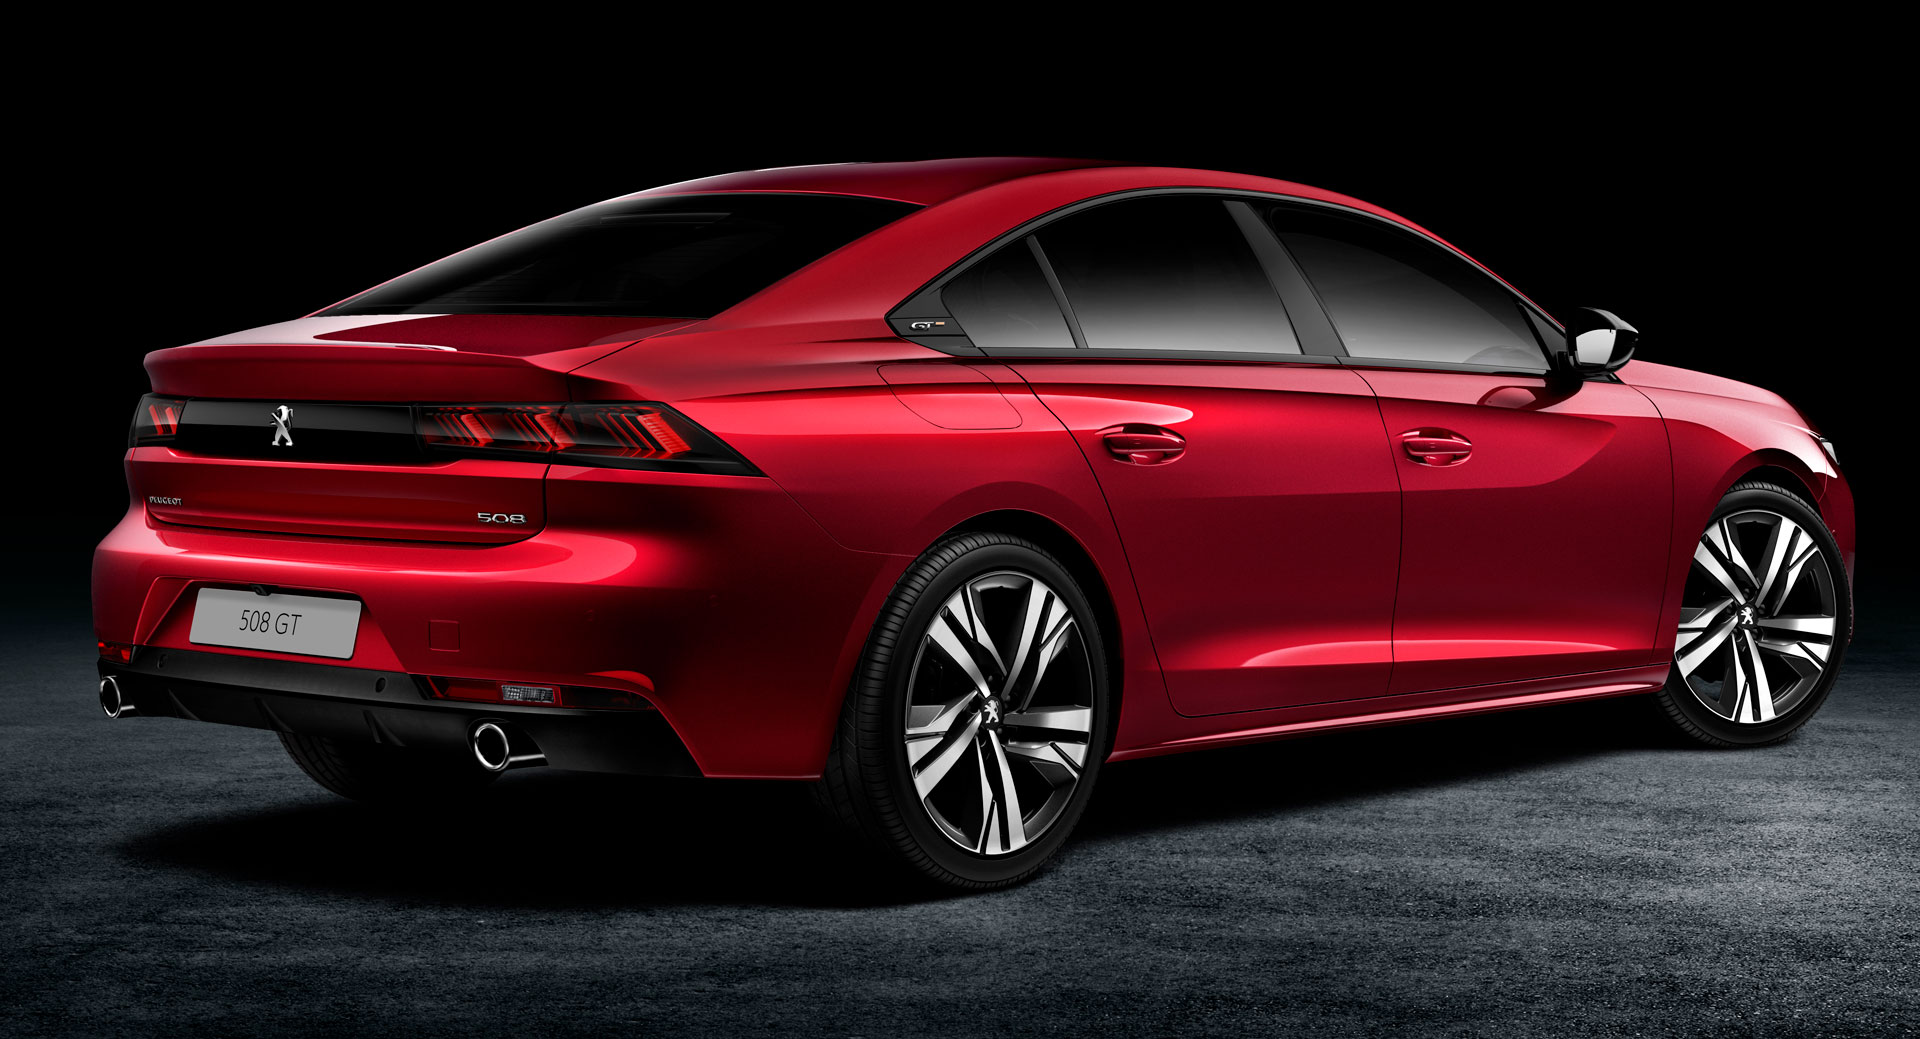 2018 peugeot 508 officially reveals its slick fastback bodystyle carscoops. Black Bedroom Furniture Sets. Home Design Ideas